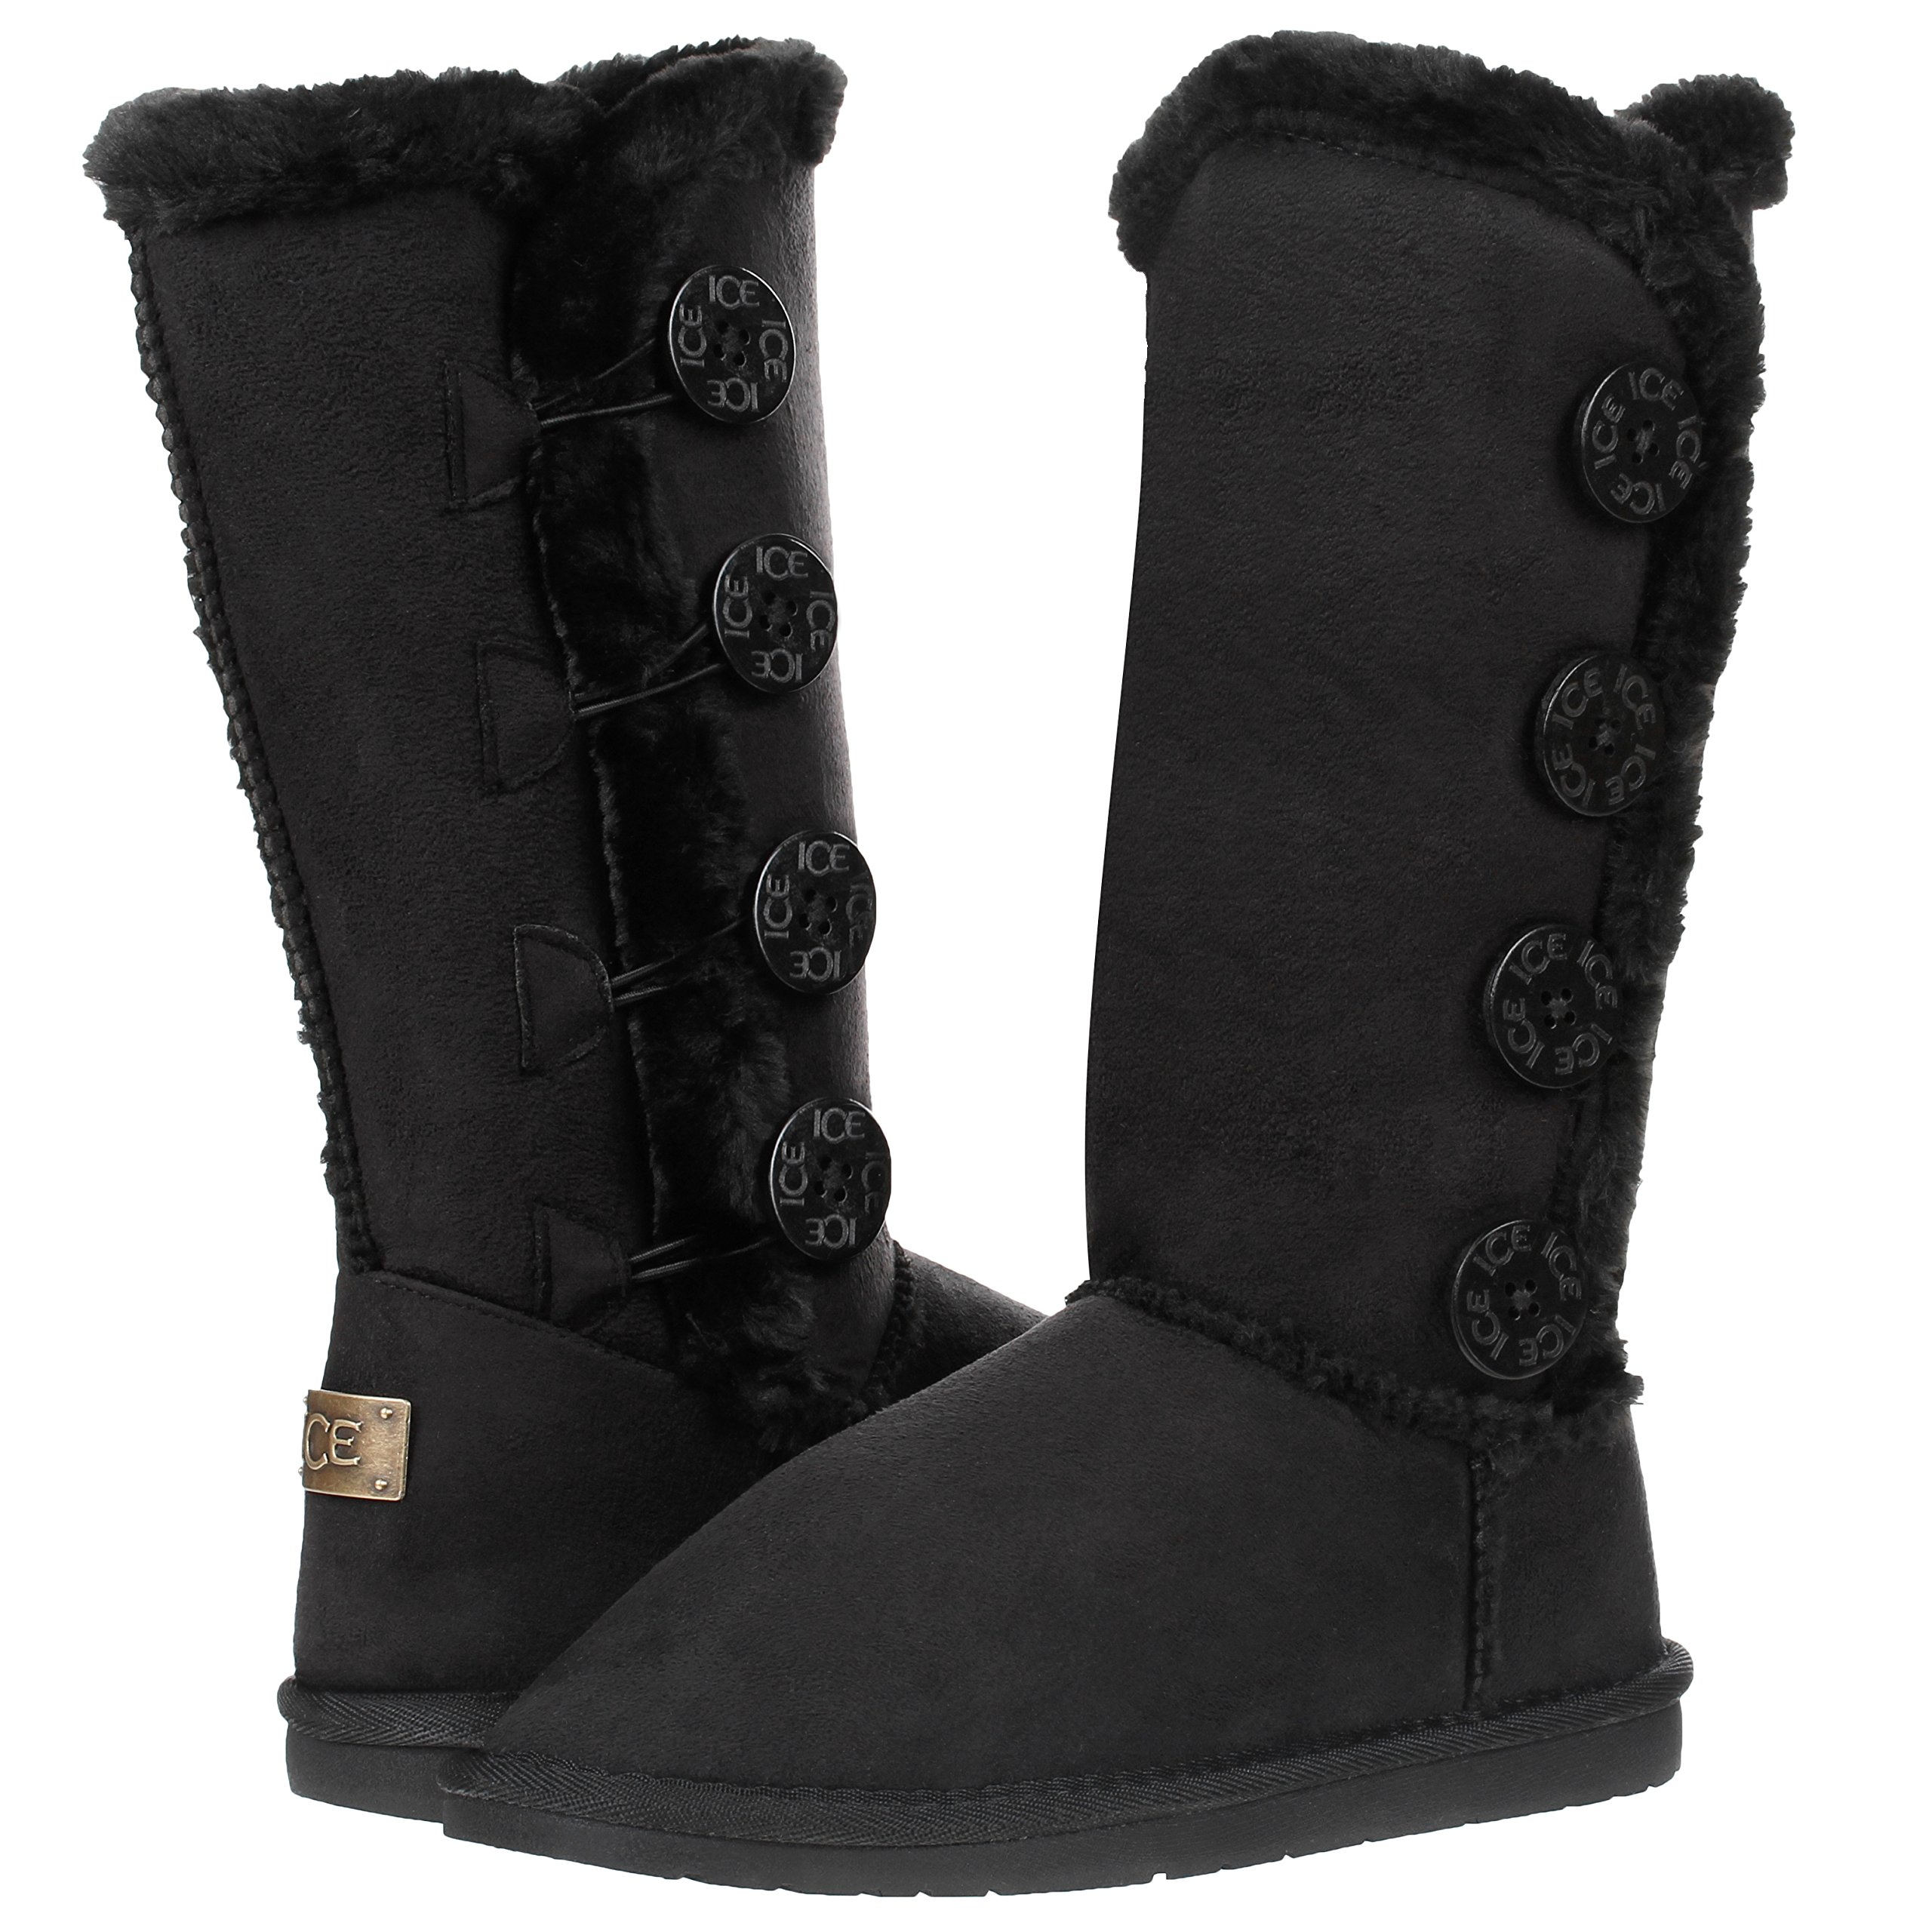 New Women's Four Button Faux Fur Lined Shearling Mid Calf Winter Boots (10, Black)